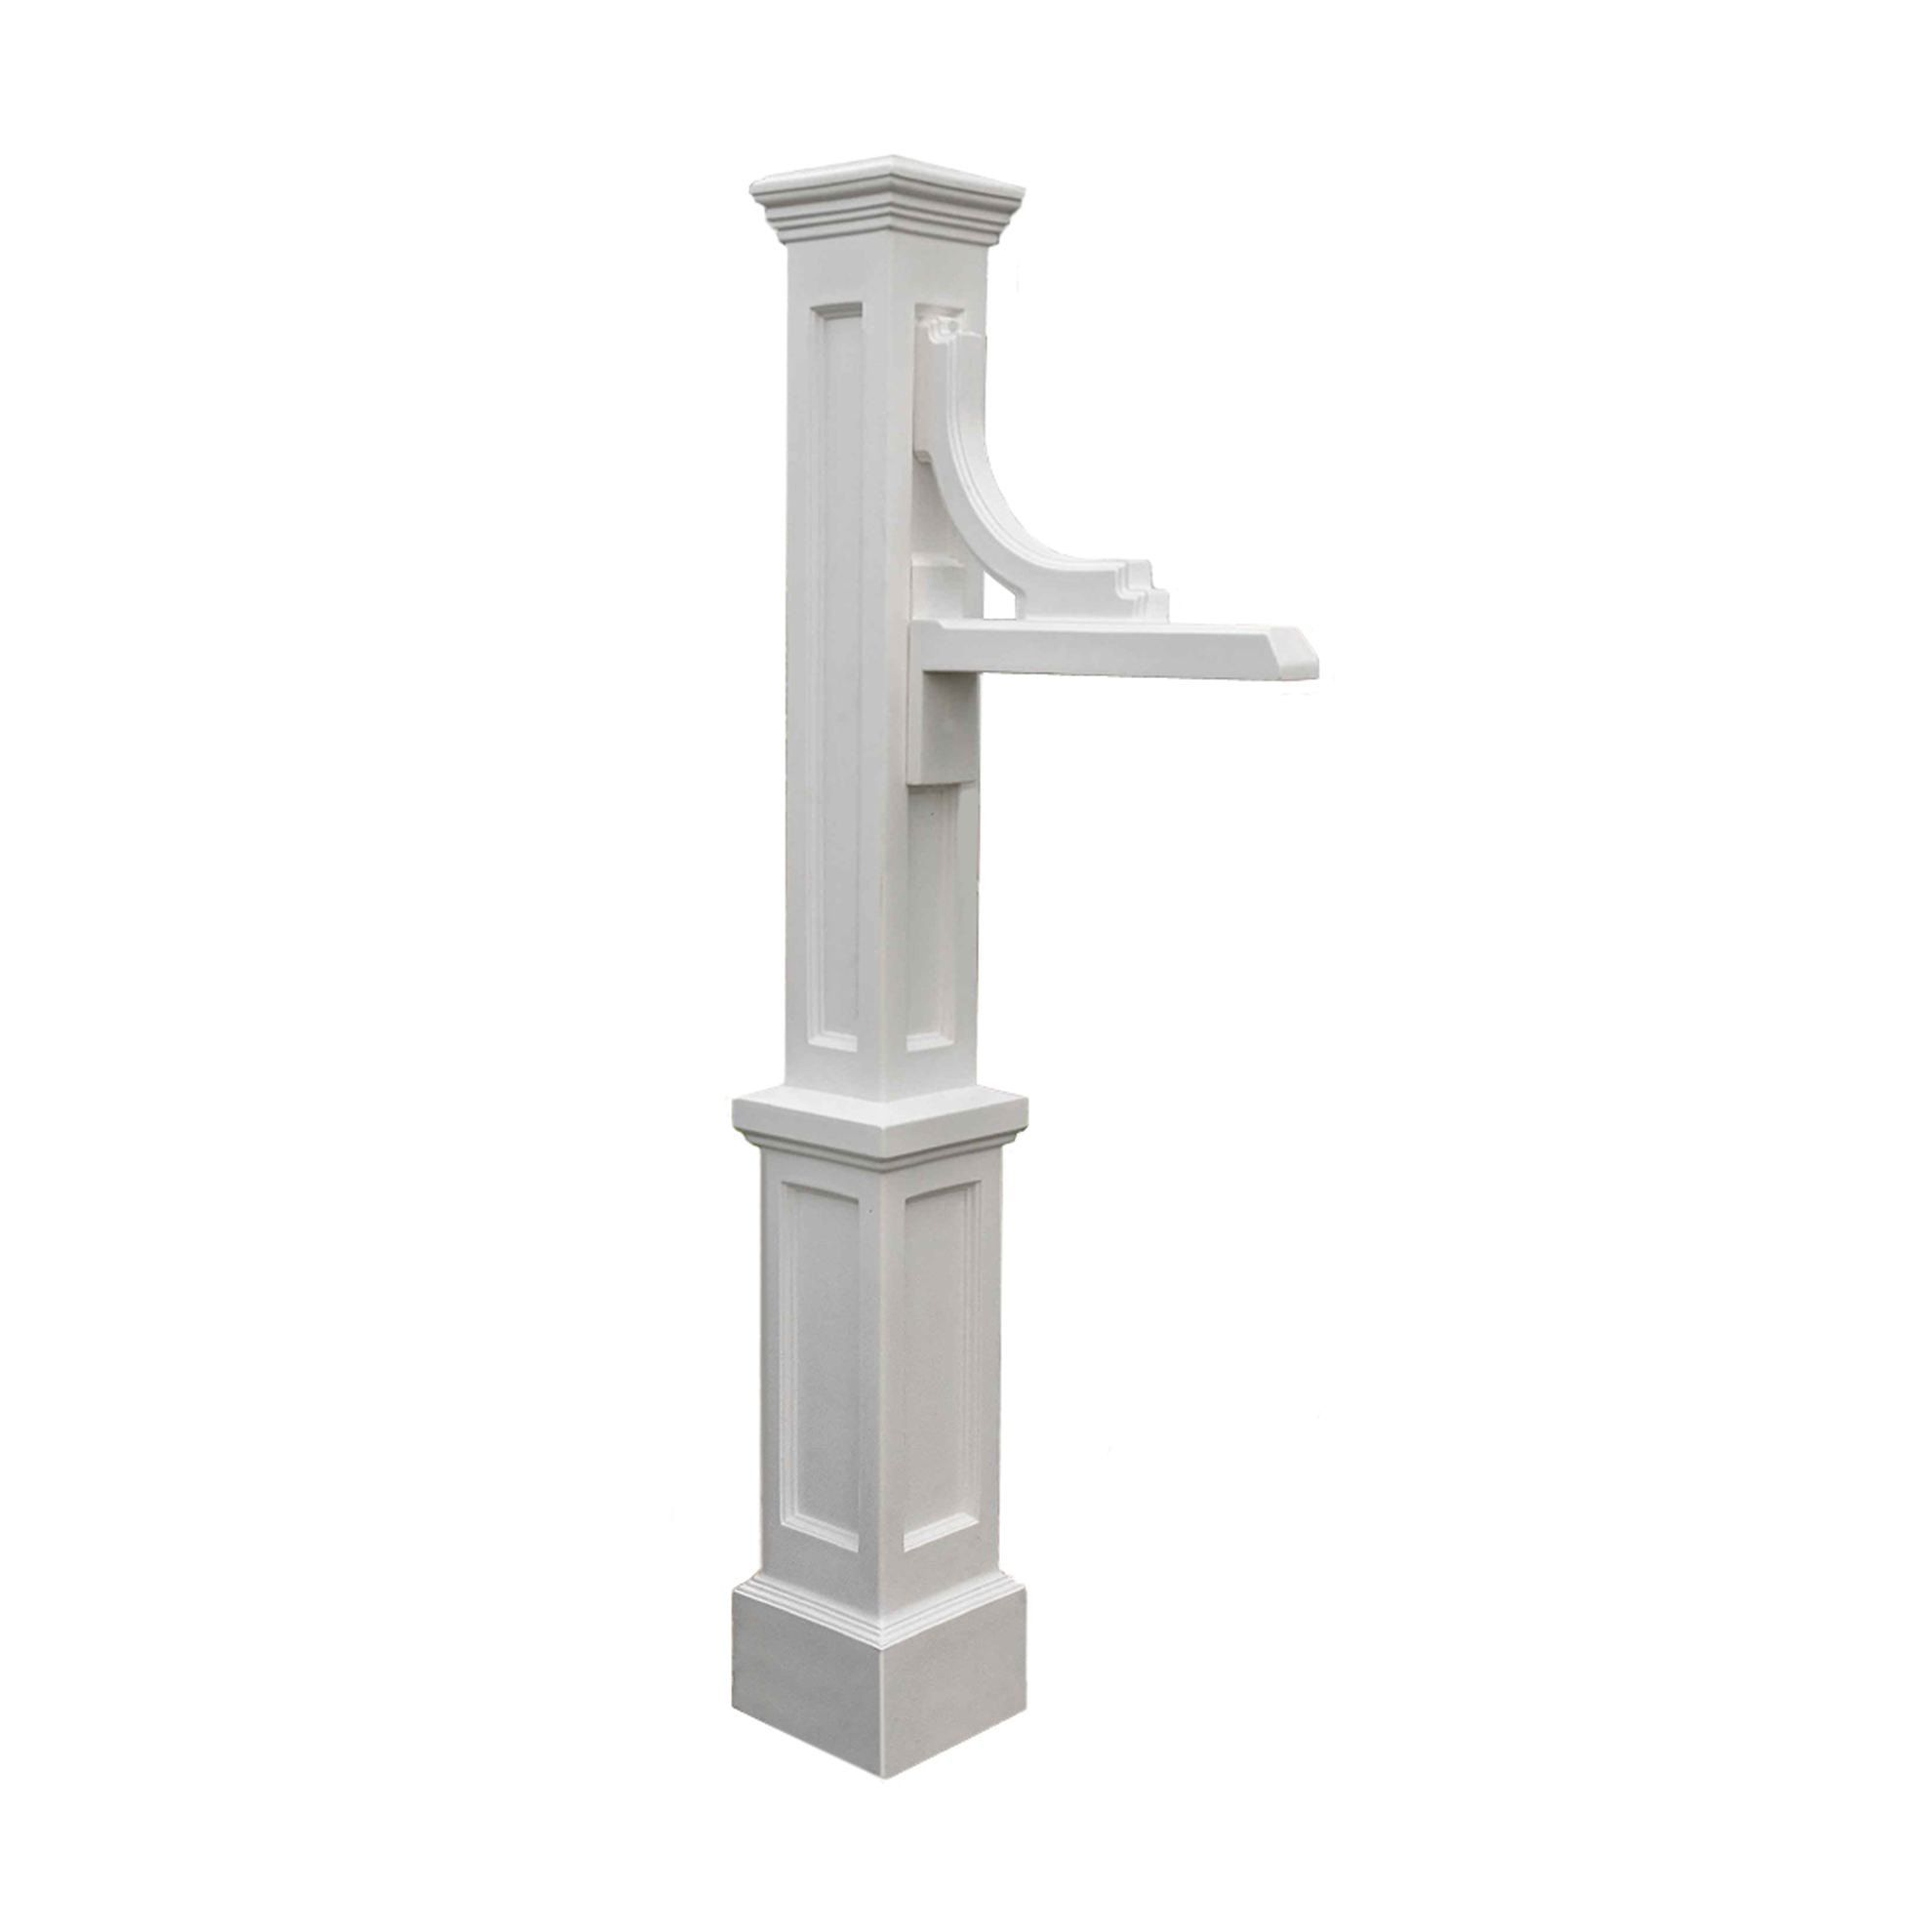 Woodhaven Address Sign Post White Address sign post